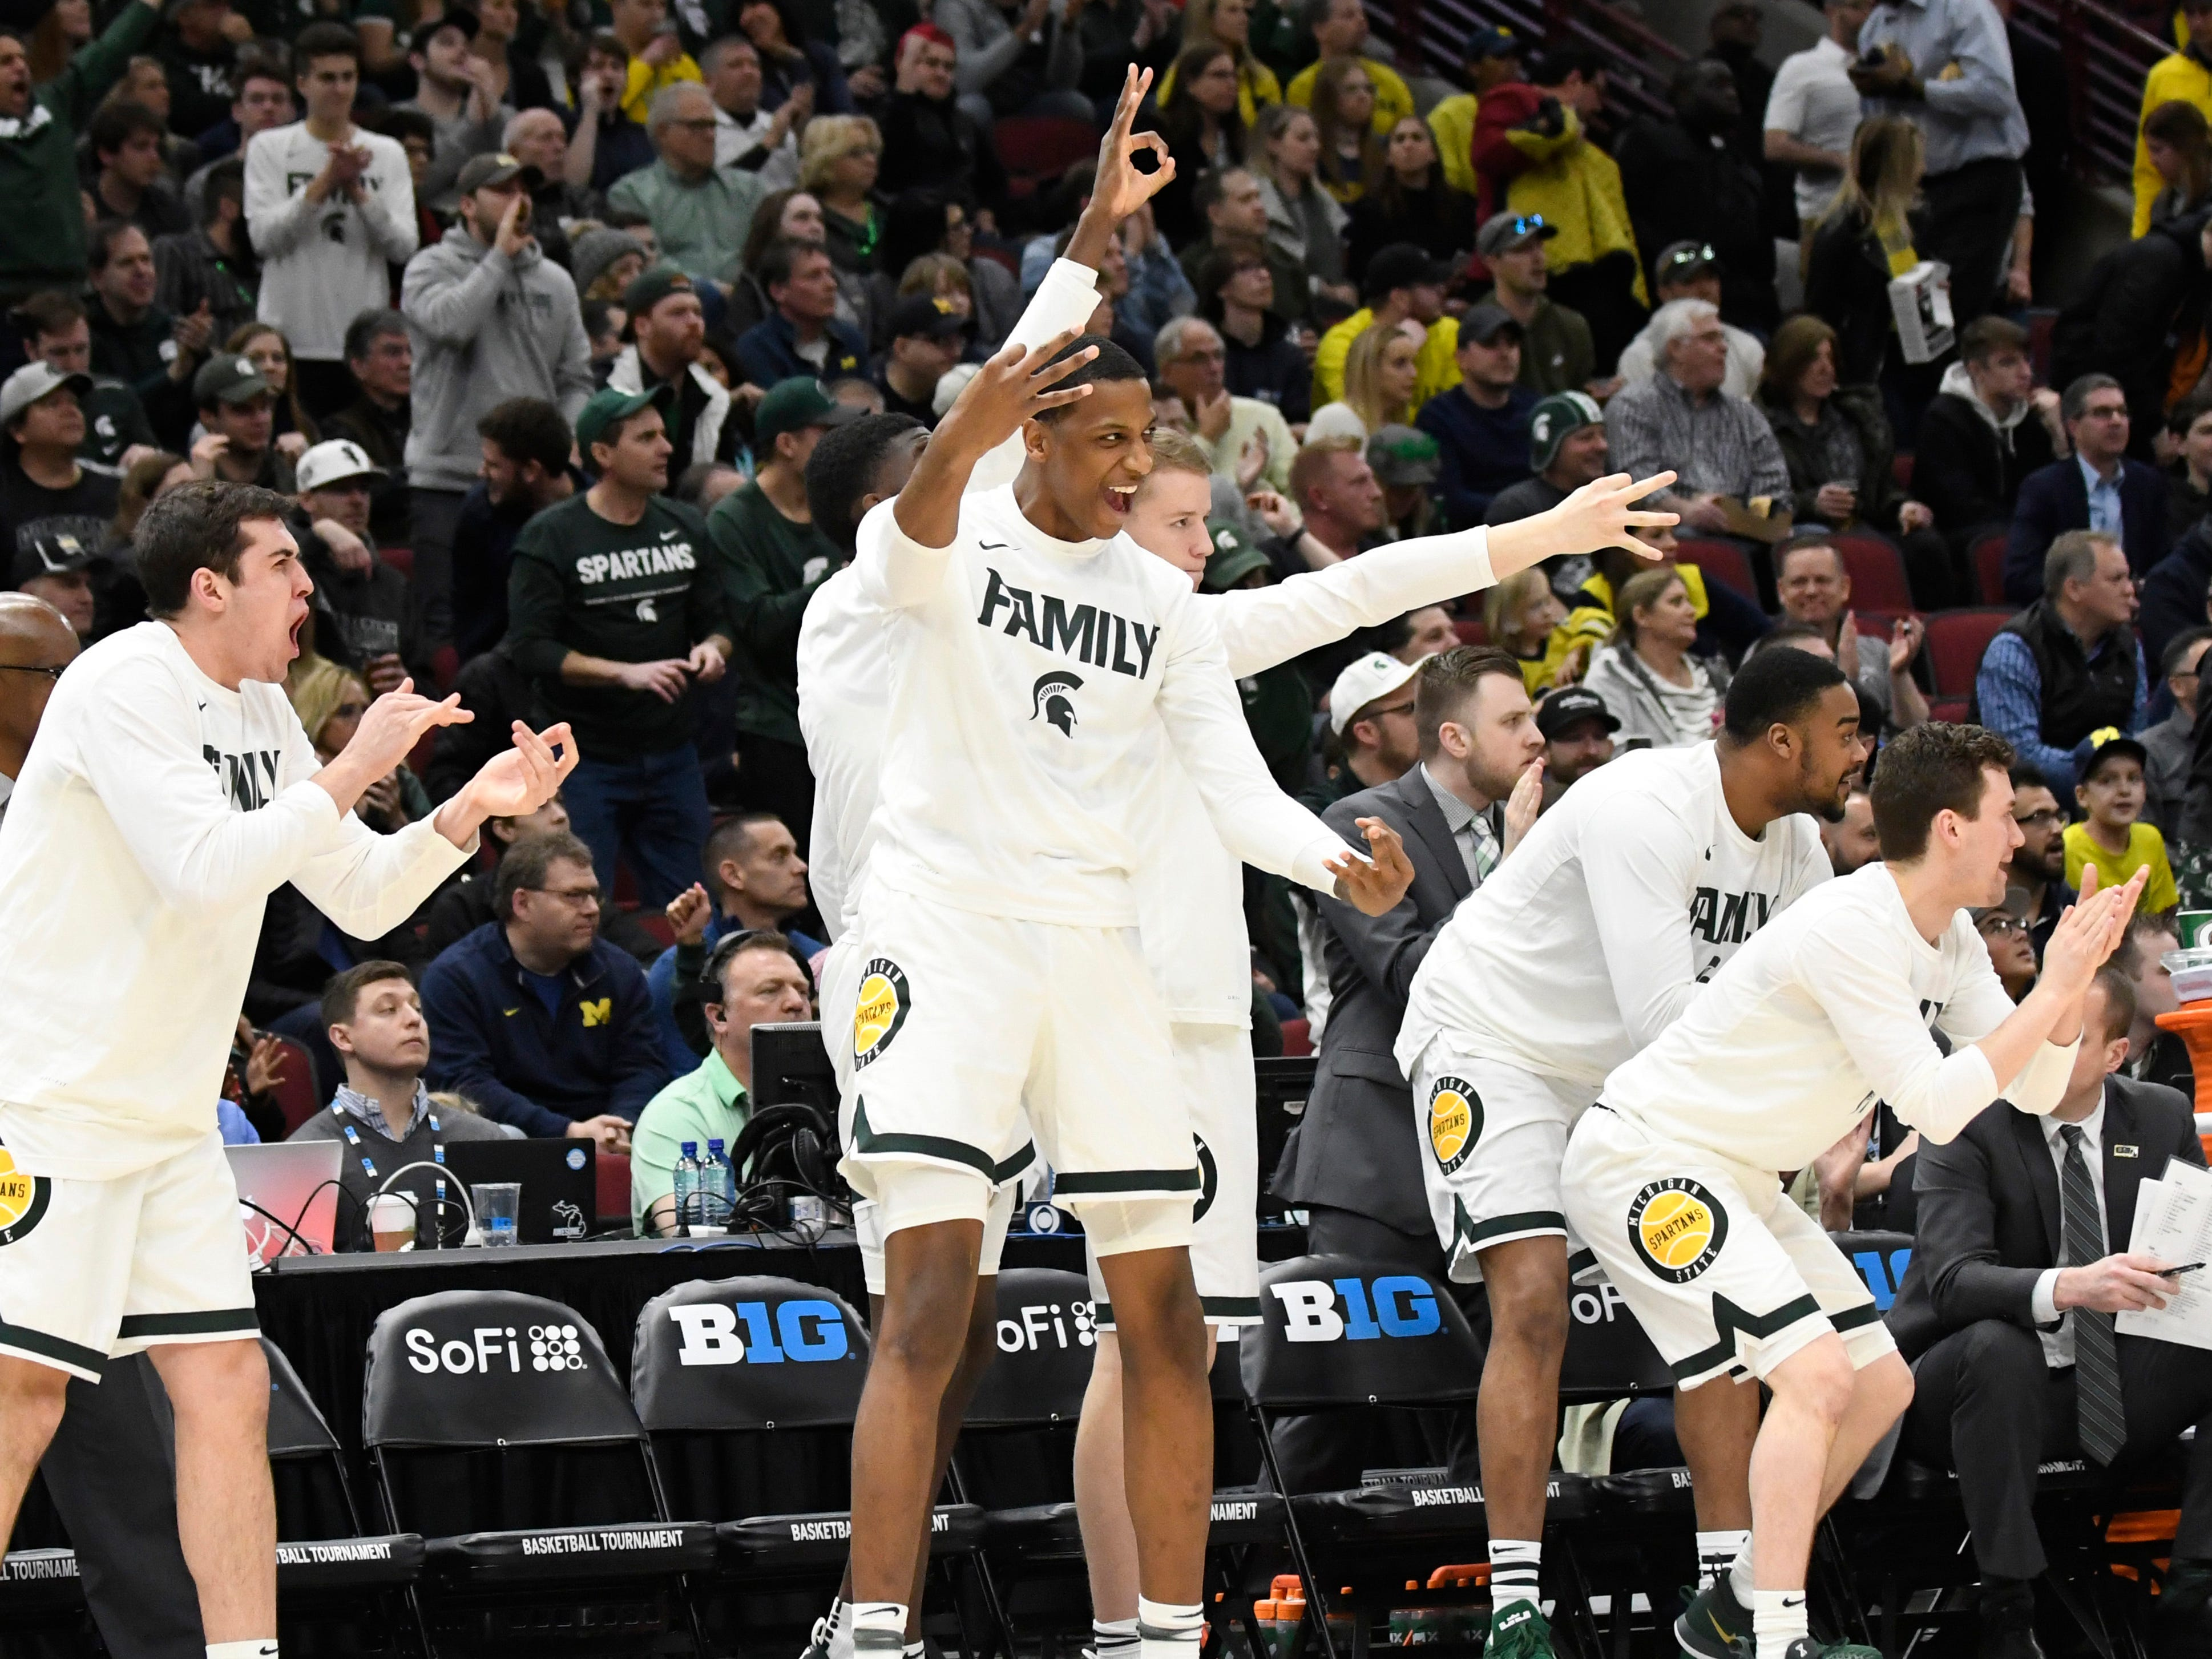 The Michigan State Spartans bech celebrate a three-point basket against the Michigan Wolverines during the first half in the Big Ten conference tournament at United Center.